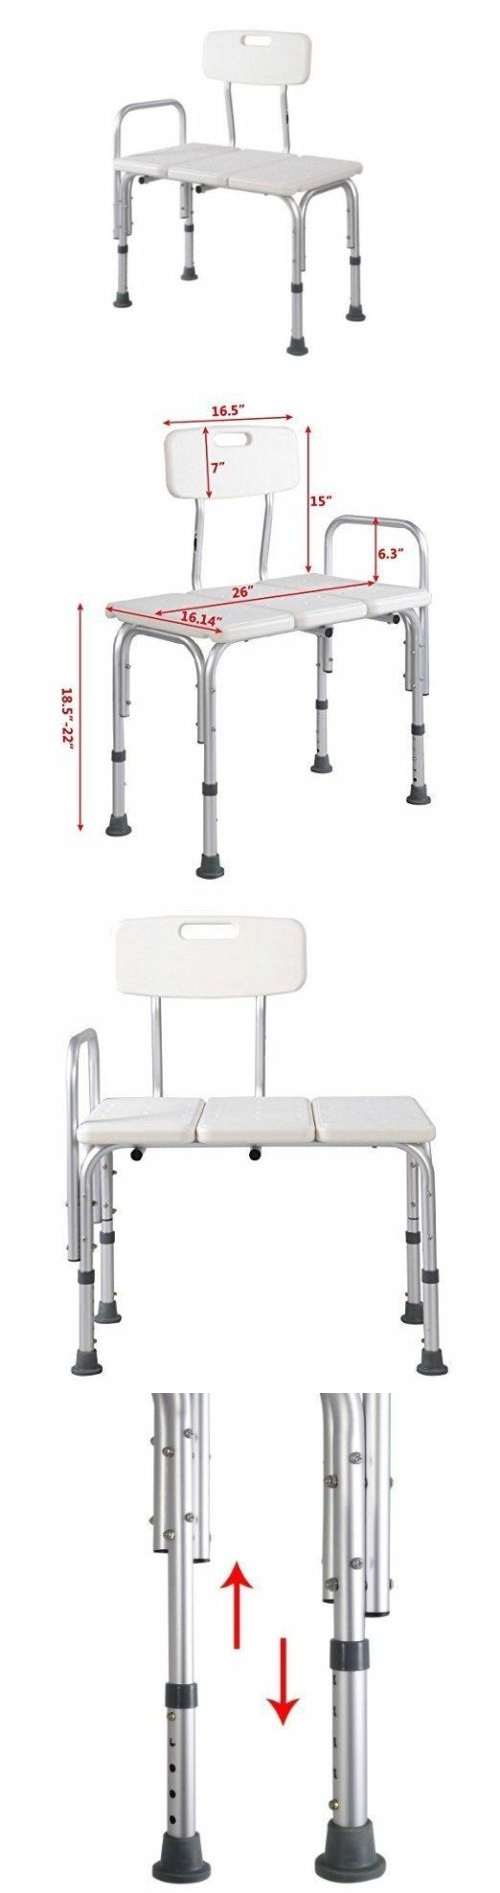 Transfer Boards and Benches: Shower Bath Seat Medical Adjustable ...